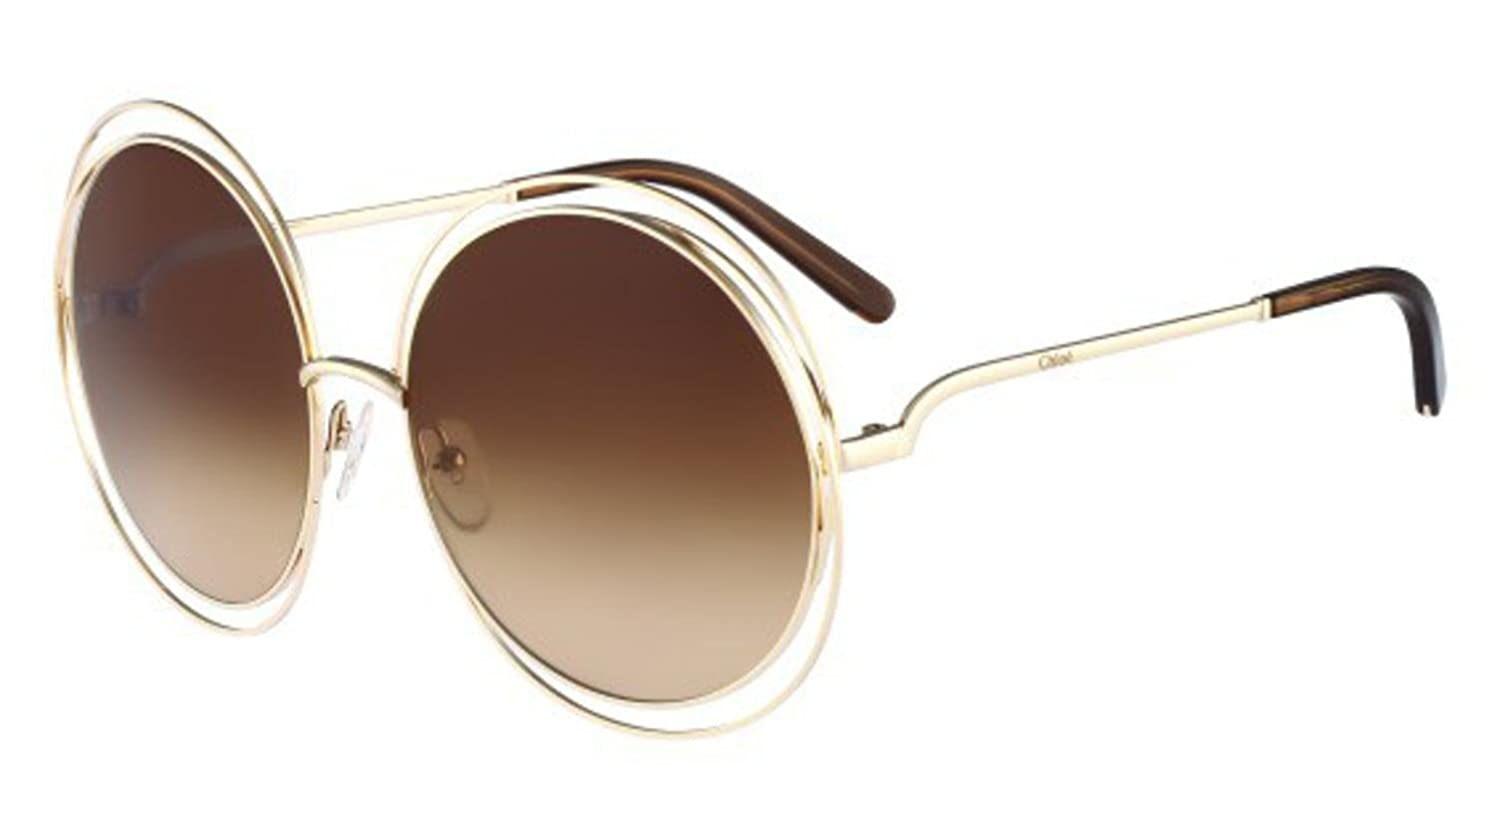 7c0ddd7c733 Chloe CE114S 784 Rose Gold / Brown Carlina Round Sunglasses Lens Category 3  Siz at Amazon Men's Clothing store: